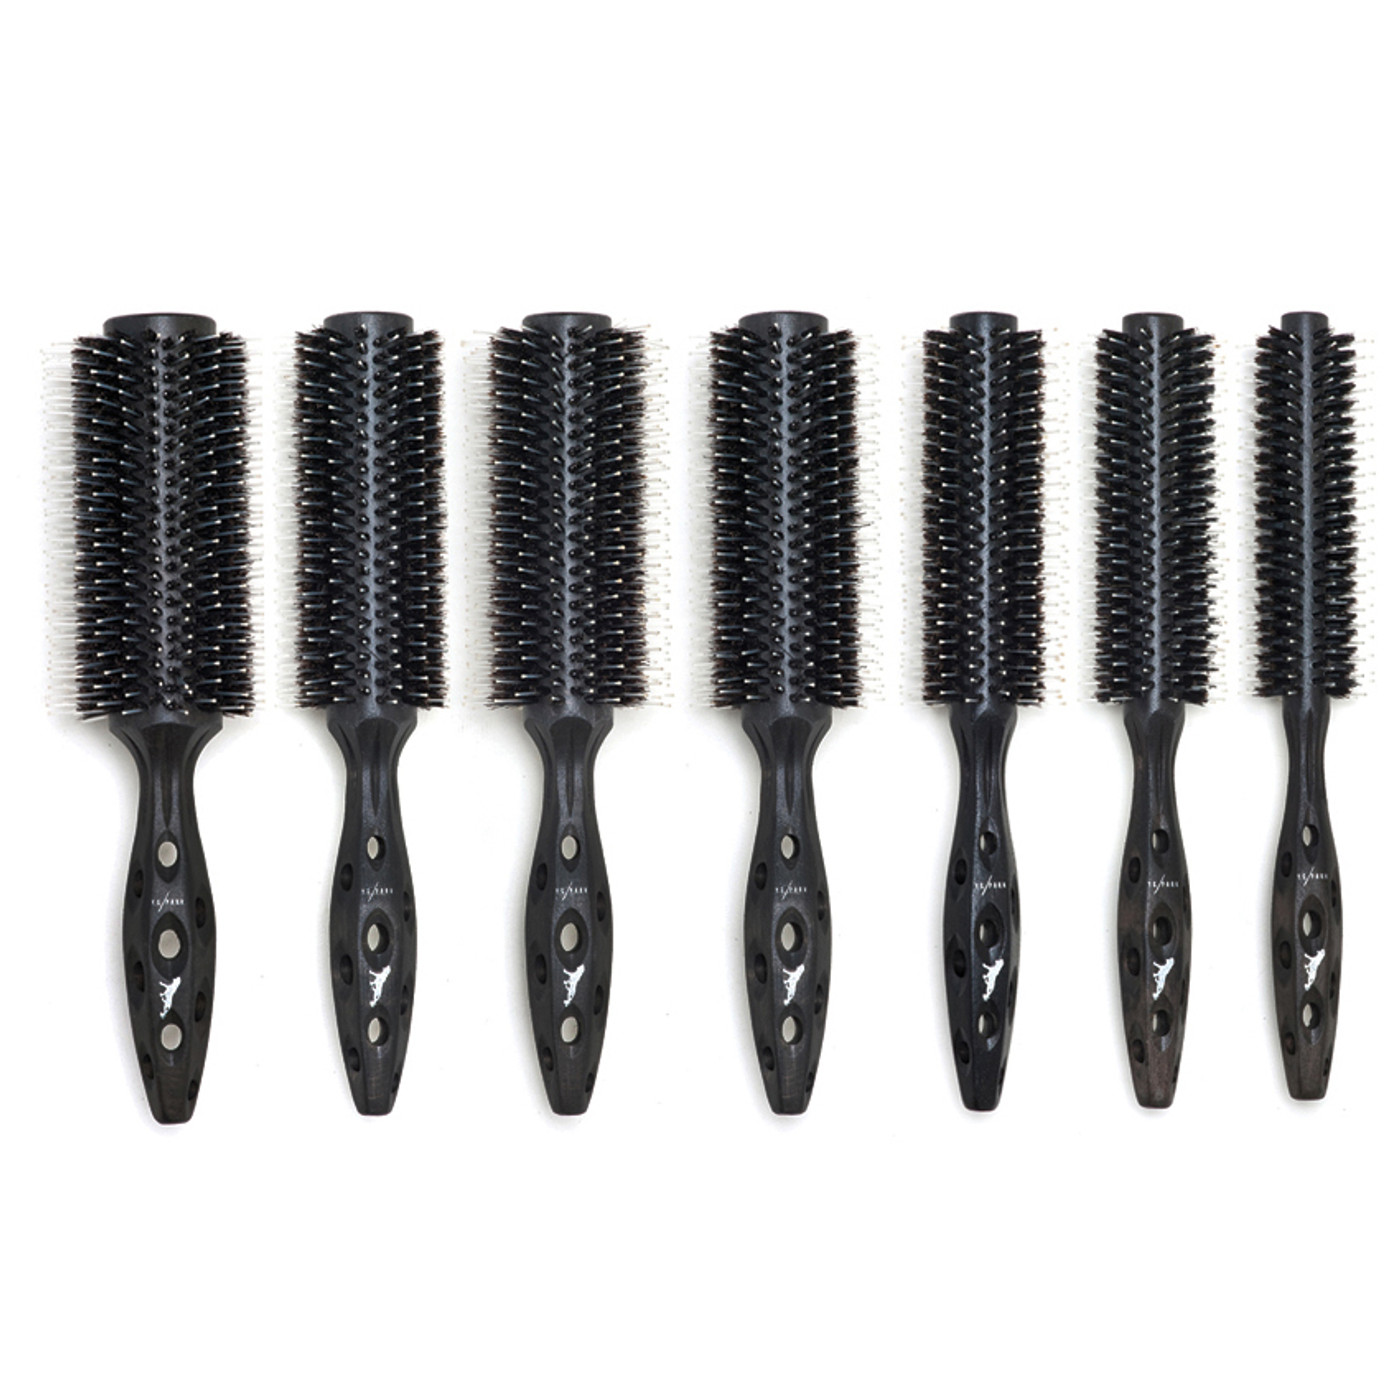 YS Park Extra Small Carbon Tiger Hairbrush